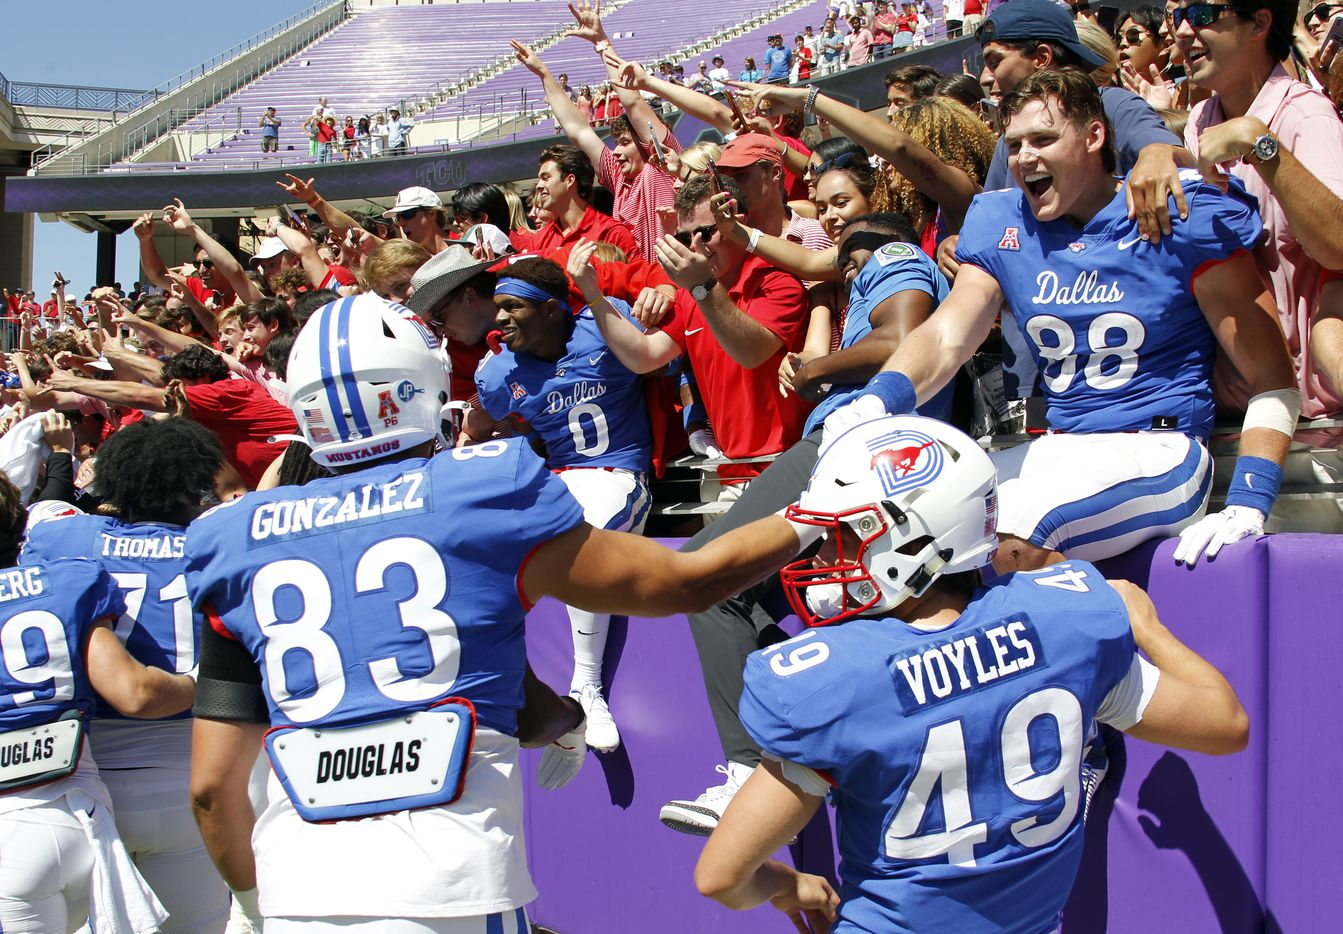 SMU Mustangs players celebrate with fans following their 42-34 victory over TCU. The two teams played their NCAA football game at Amon G. Carter Stadium on the campus of TCU in Fort Worth on September 25, 2021. (Steve Hamm/ Special Contributor)